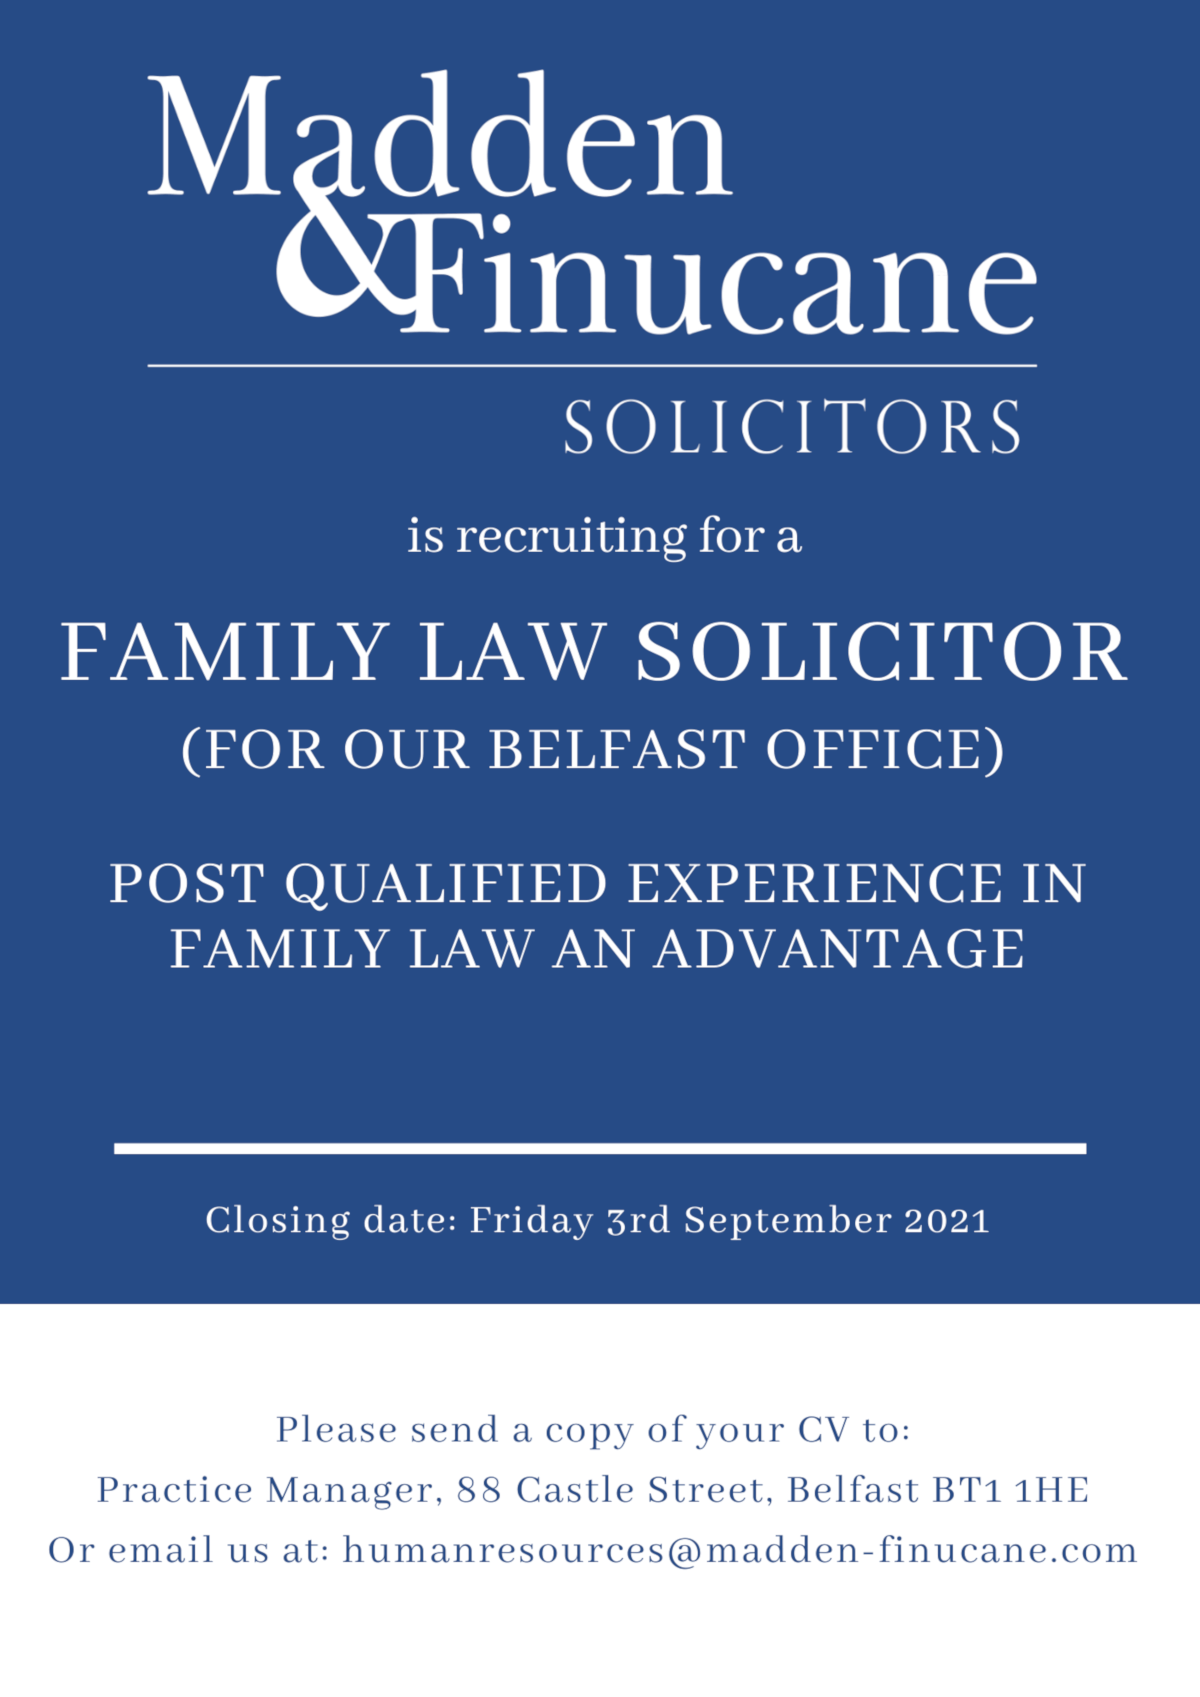 Family Law Solicitor Job Opportunity at Madden & Finucane Solicitors